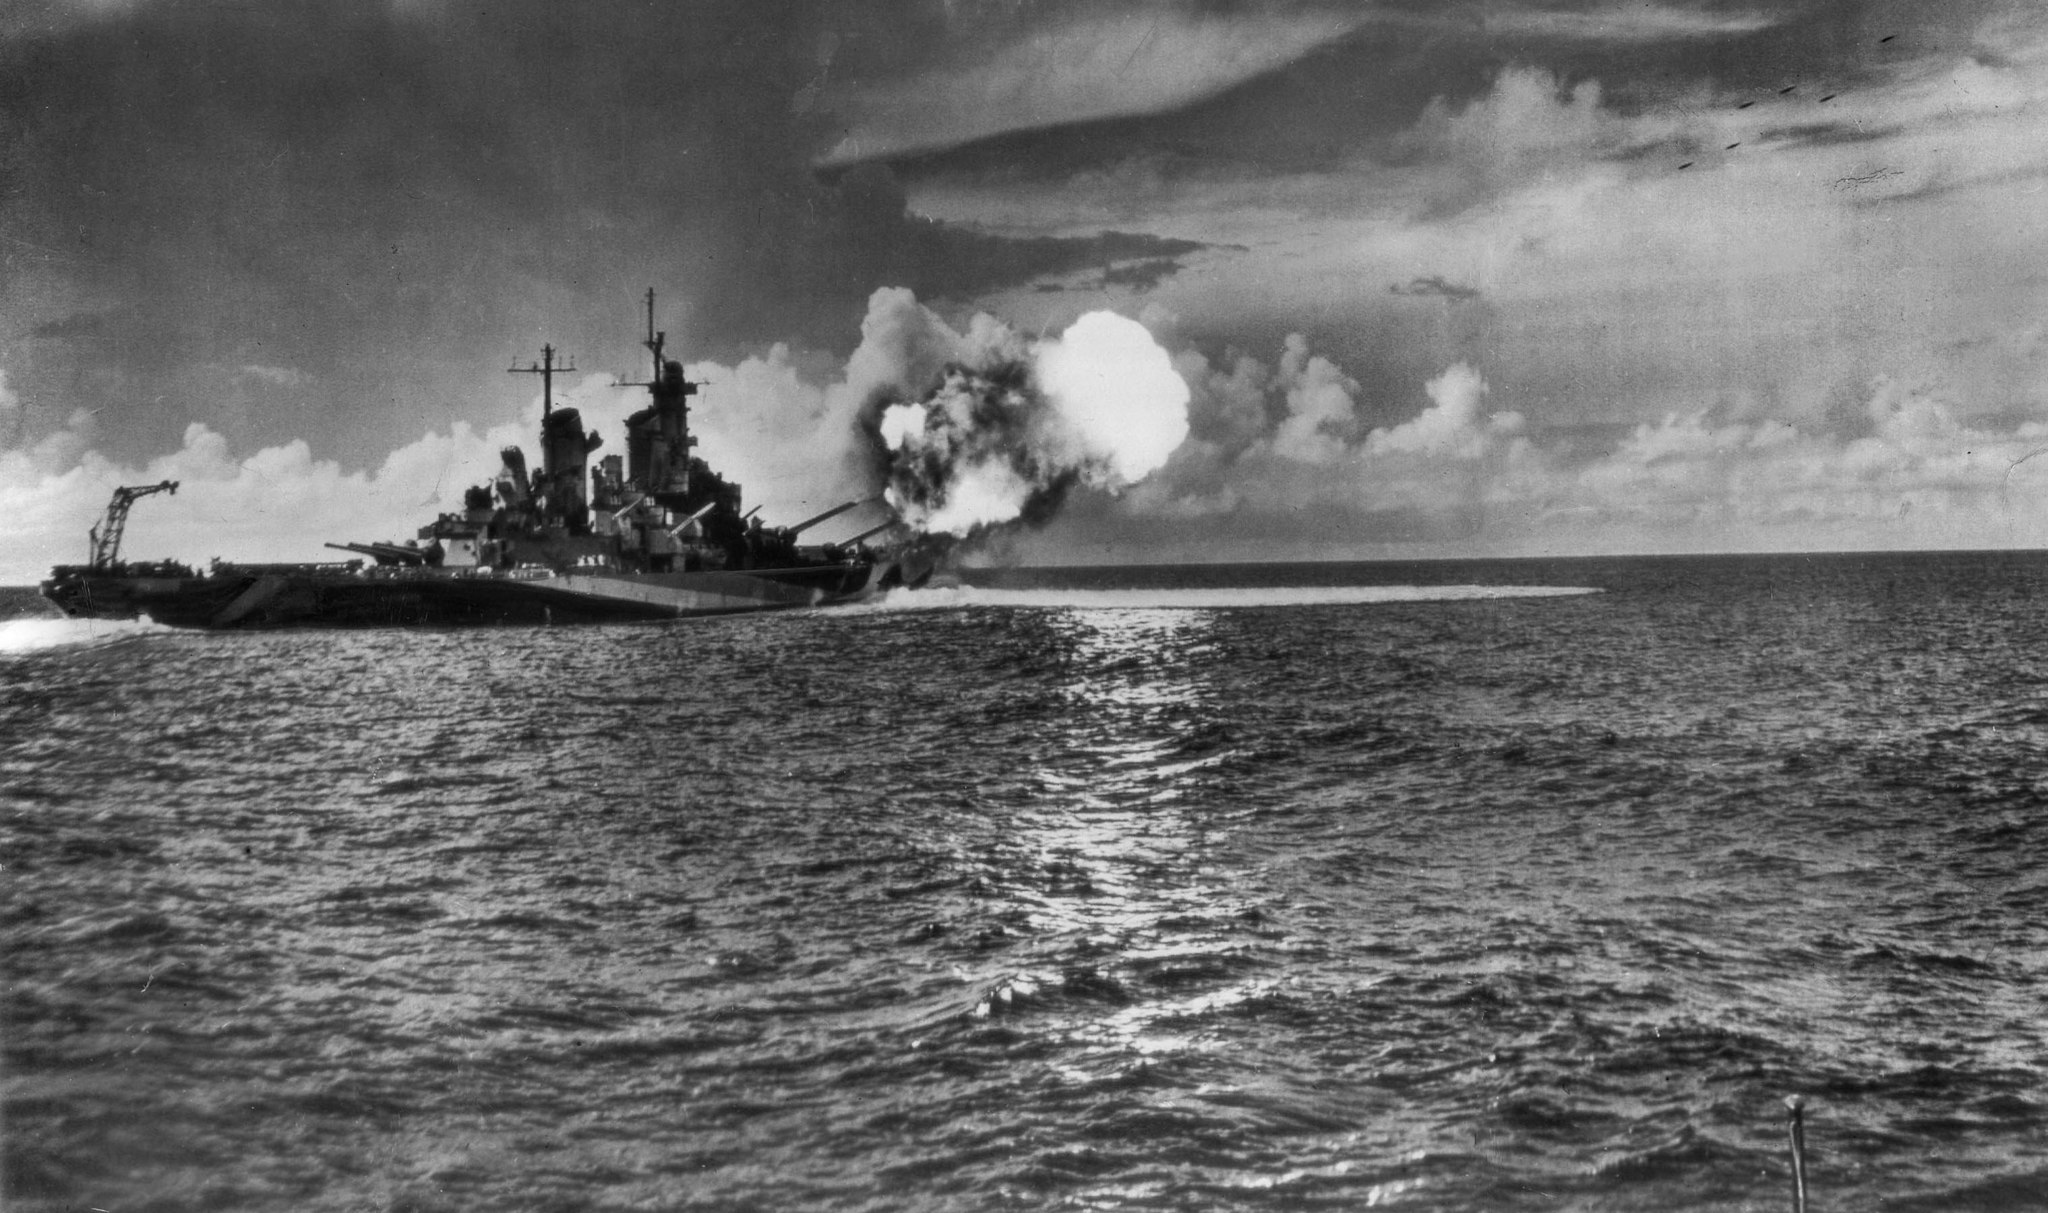 1944: The battlship USS Missouri fires a salvo from the two forward turrets. The 16-inch projectiles